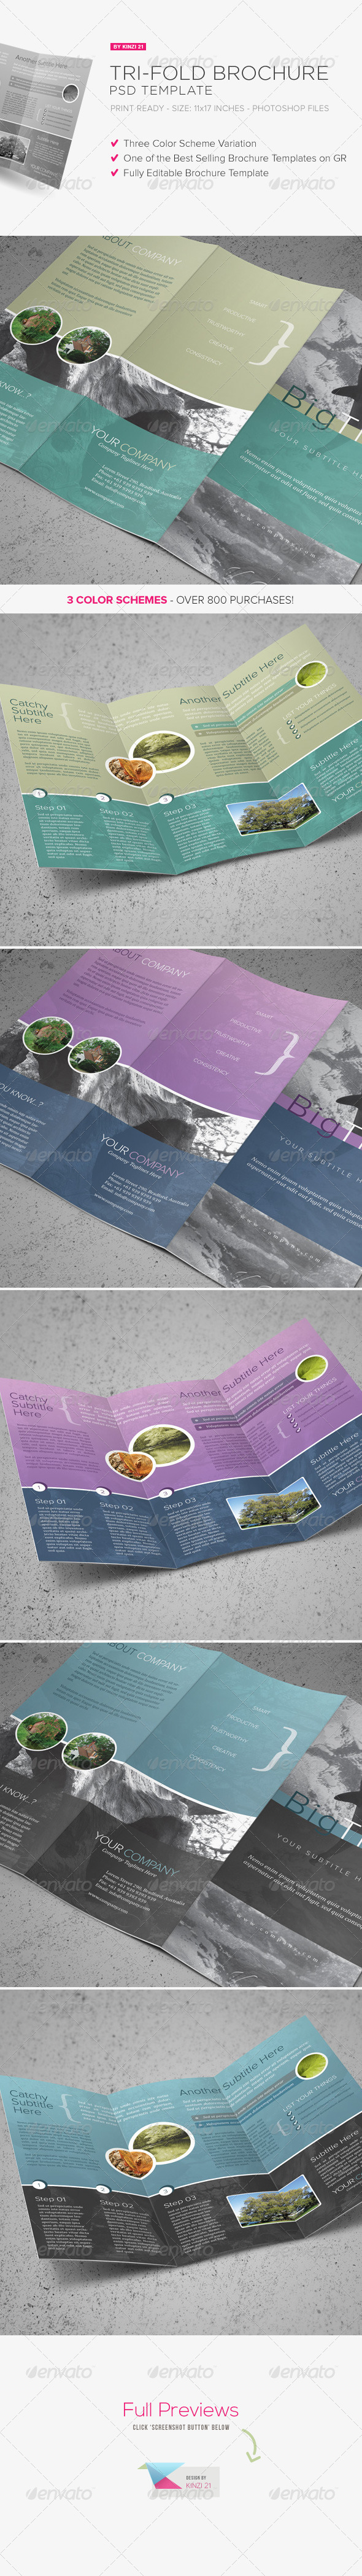 Tri-fold Brochure PSD Template Free Download #1 free download Tri-fold Brochure PSD Template Free Download #1 nulled Tri-fold Brochure PSD Template Free Download #1